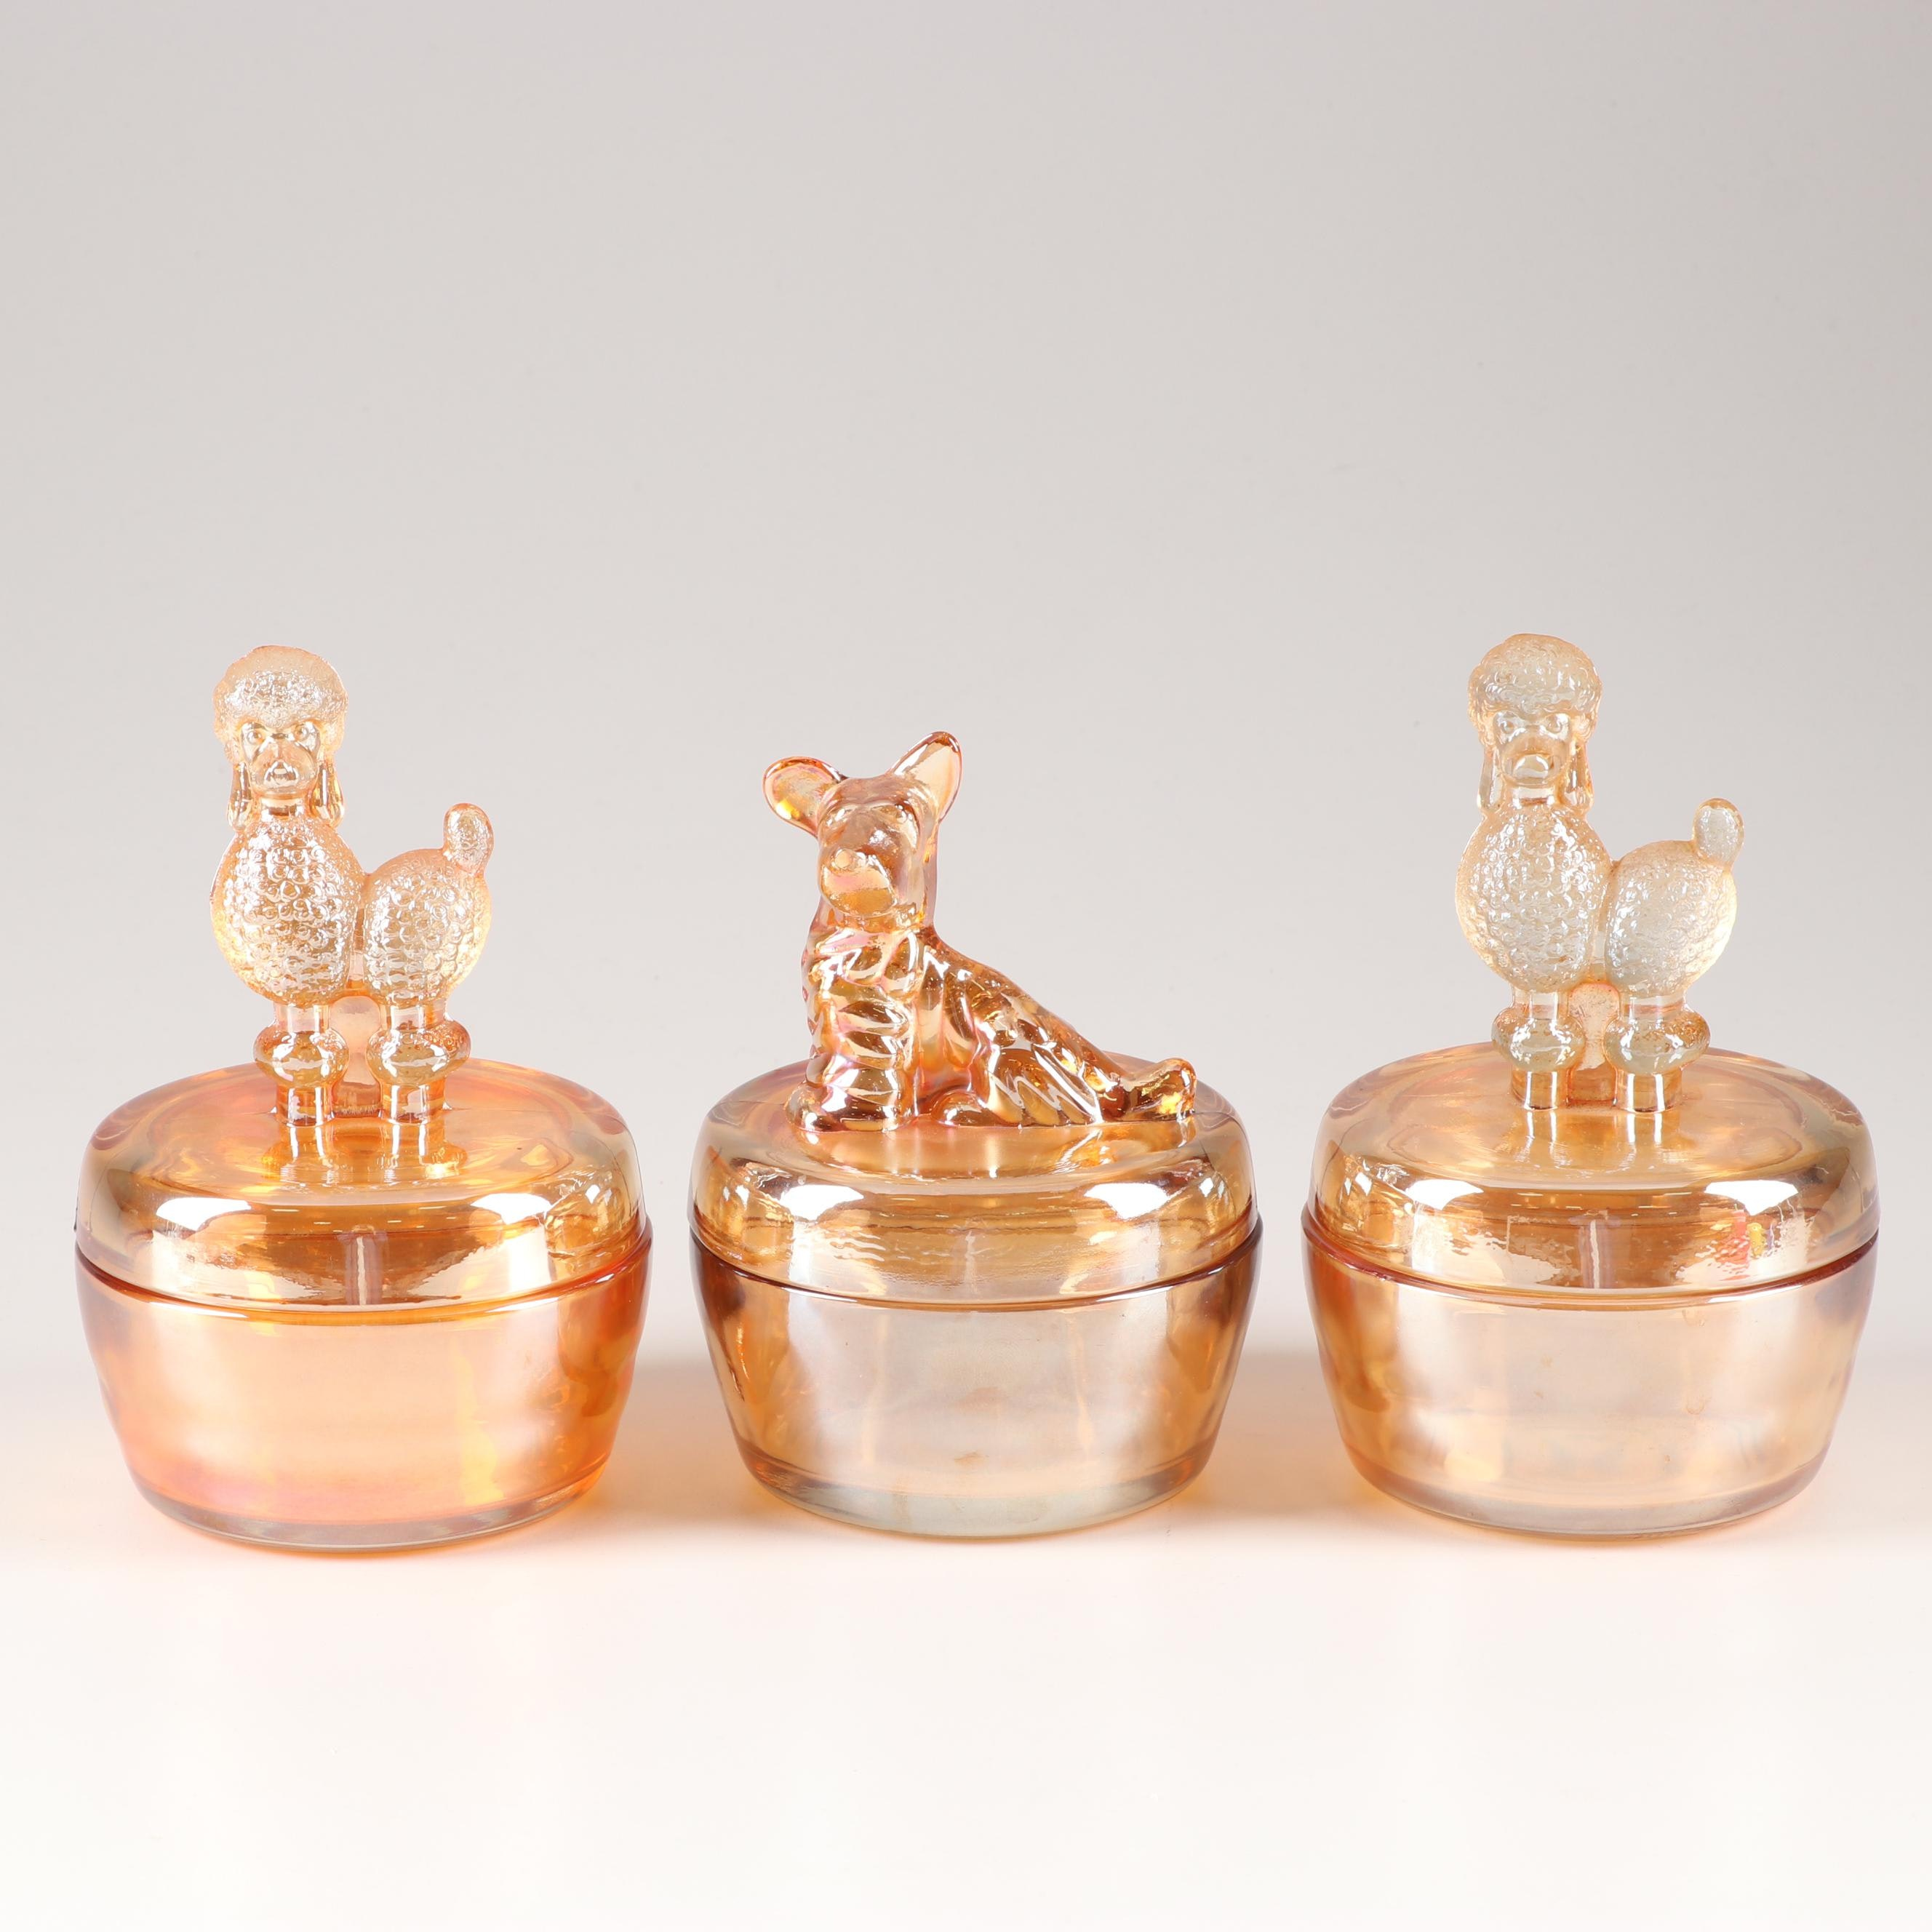 Vintage Jeanette Specialty Glass Powder Jars with Animal Figures